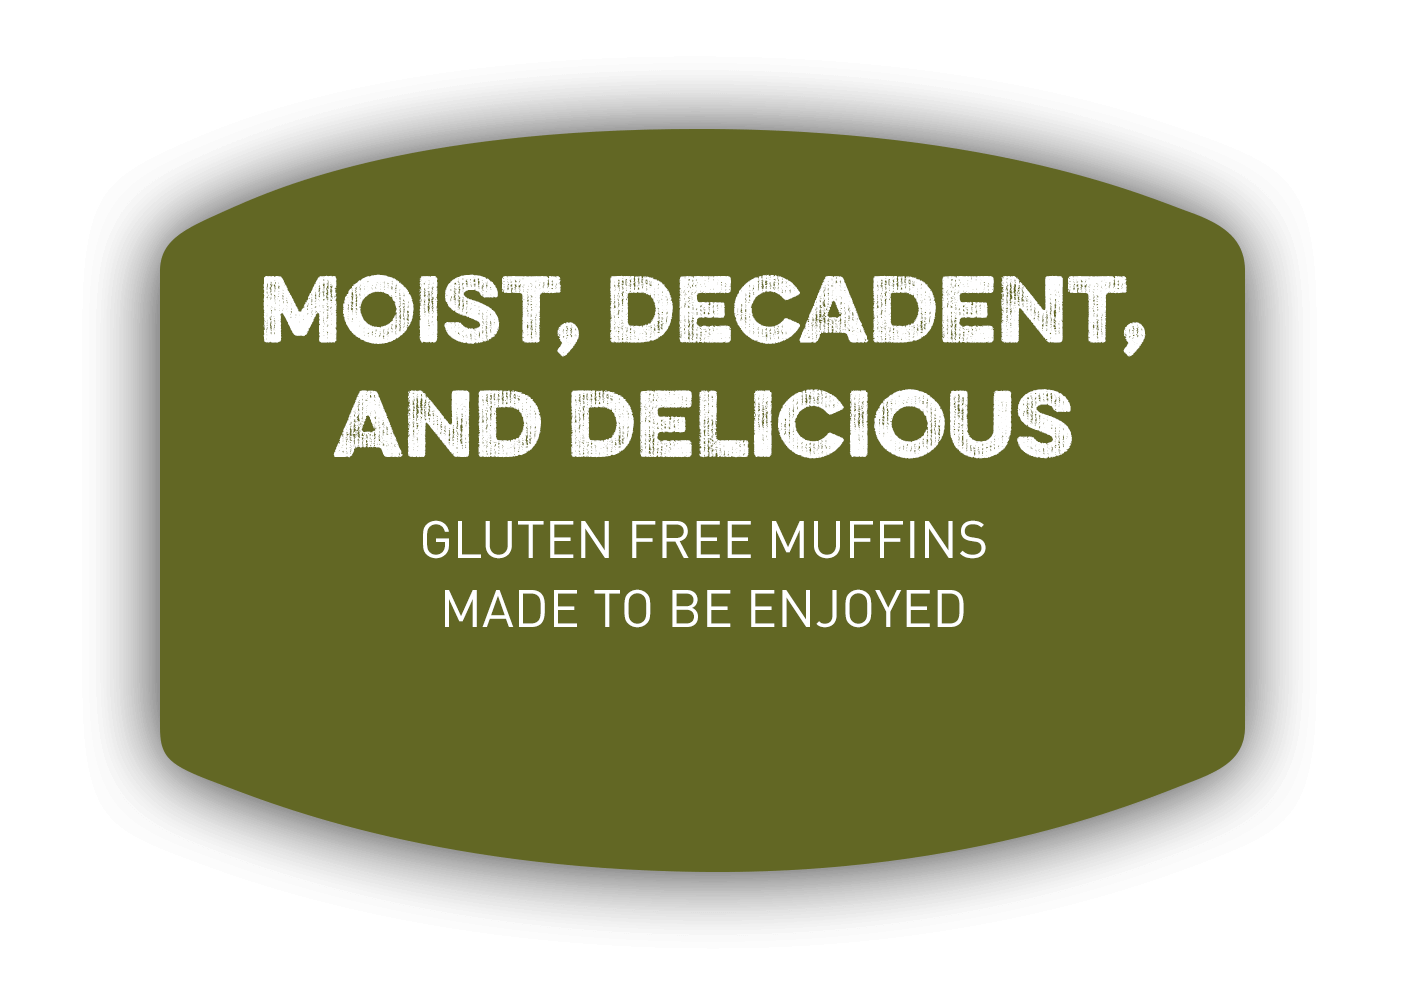 MOIST, DECADENT, AND DELICIOUS. Gluten-free muffins made to be enjoyed.